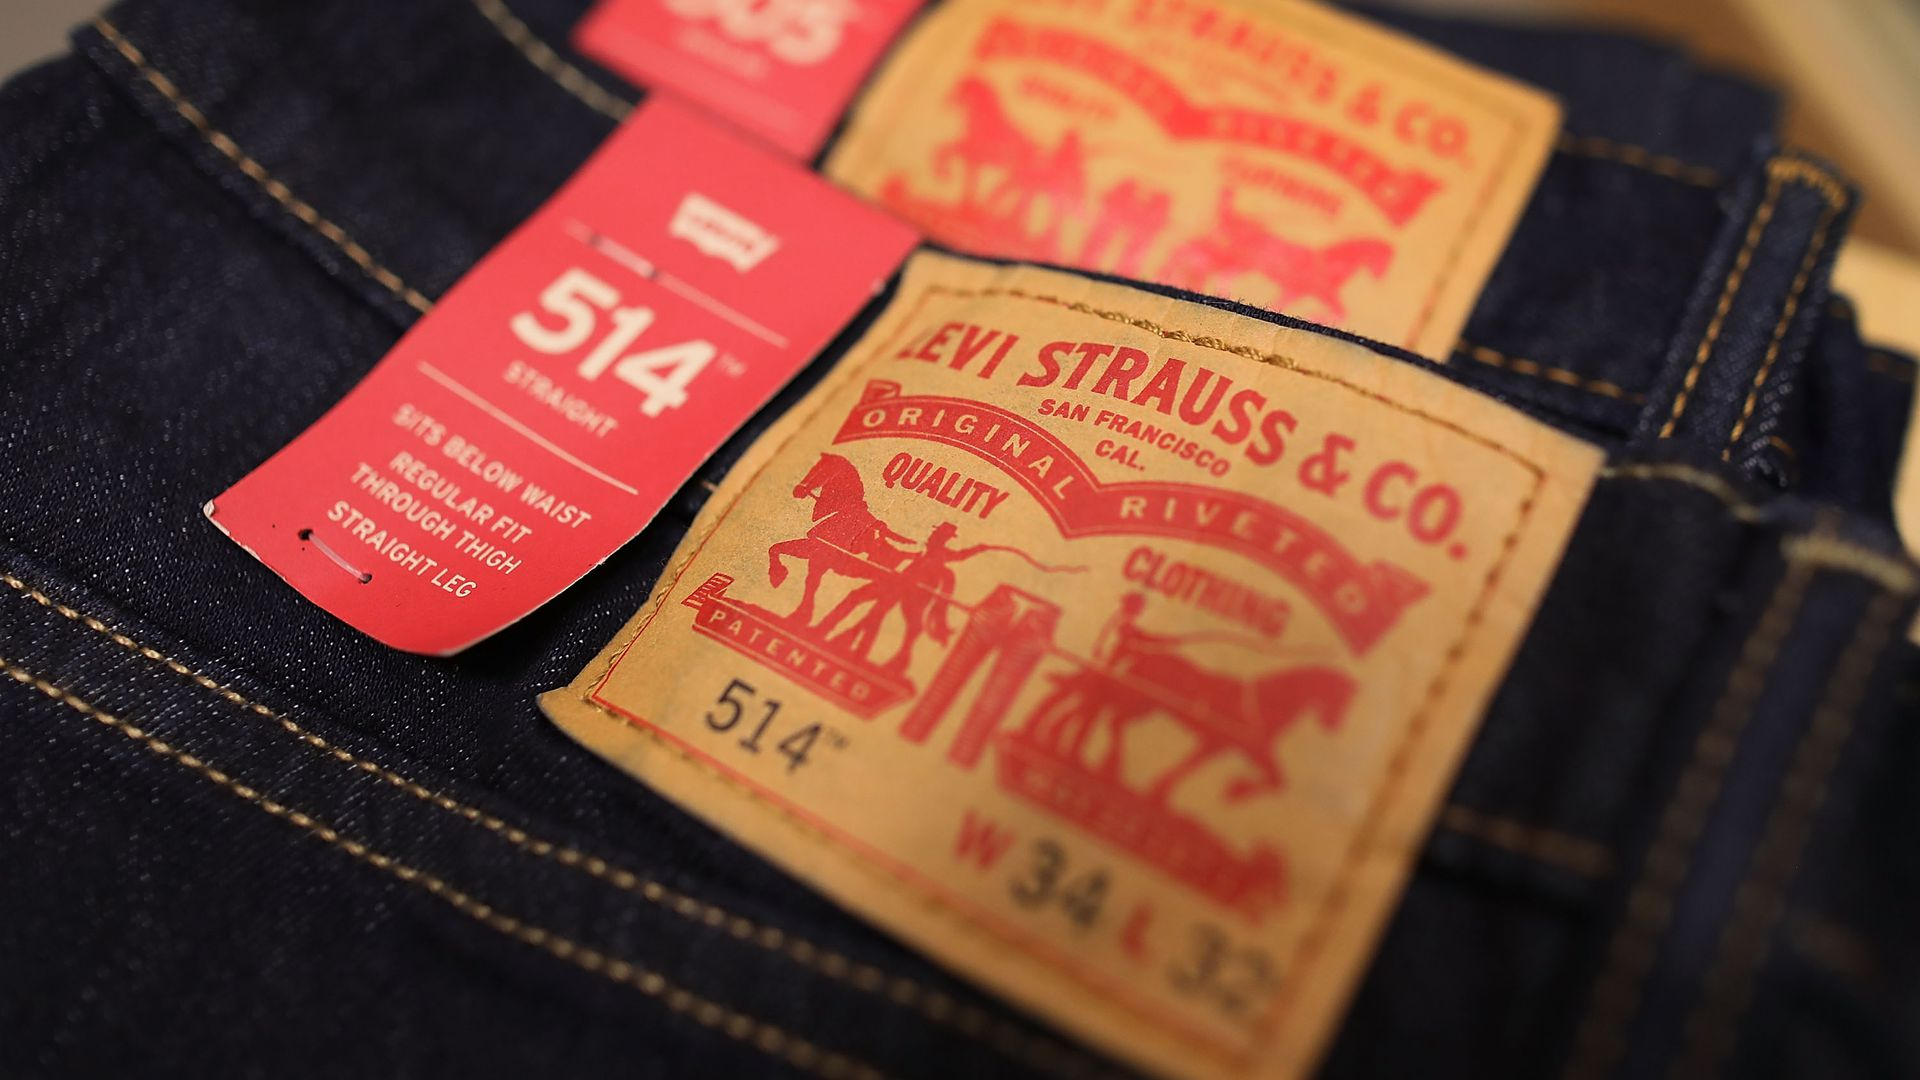 Levi strauss ipo press release